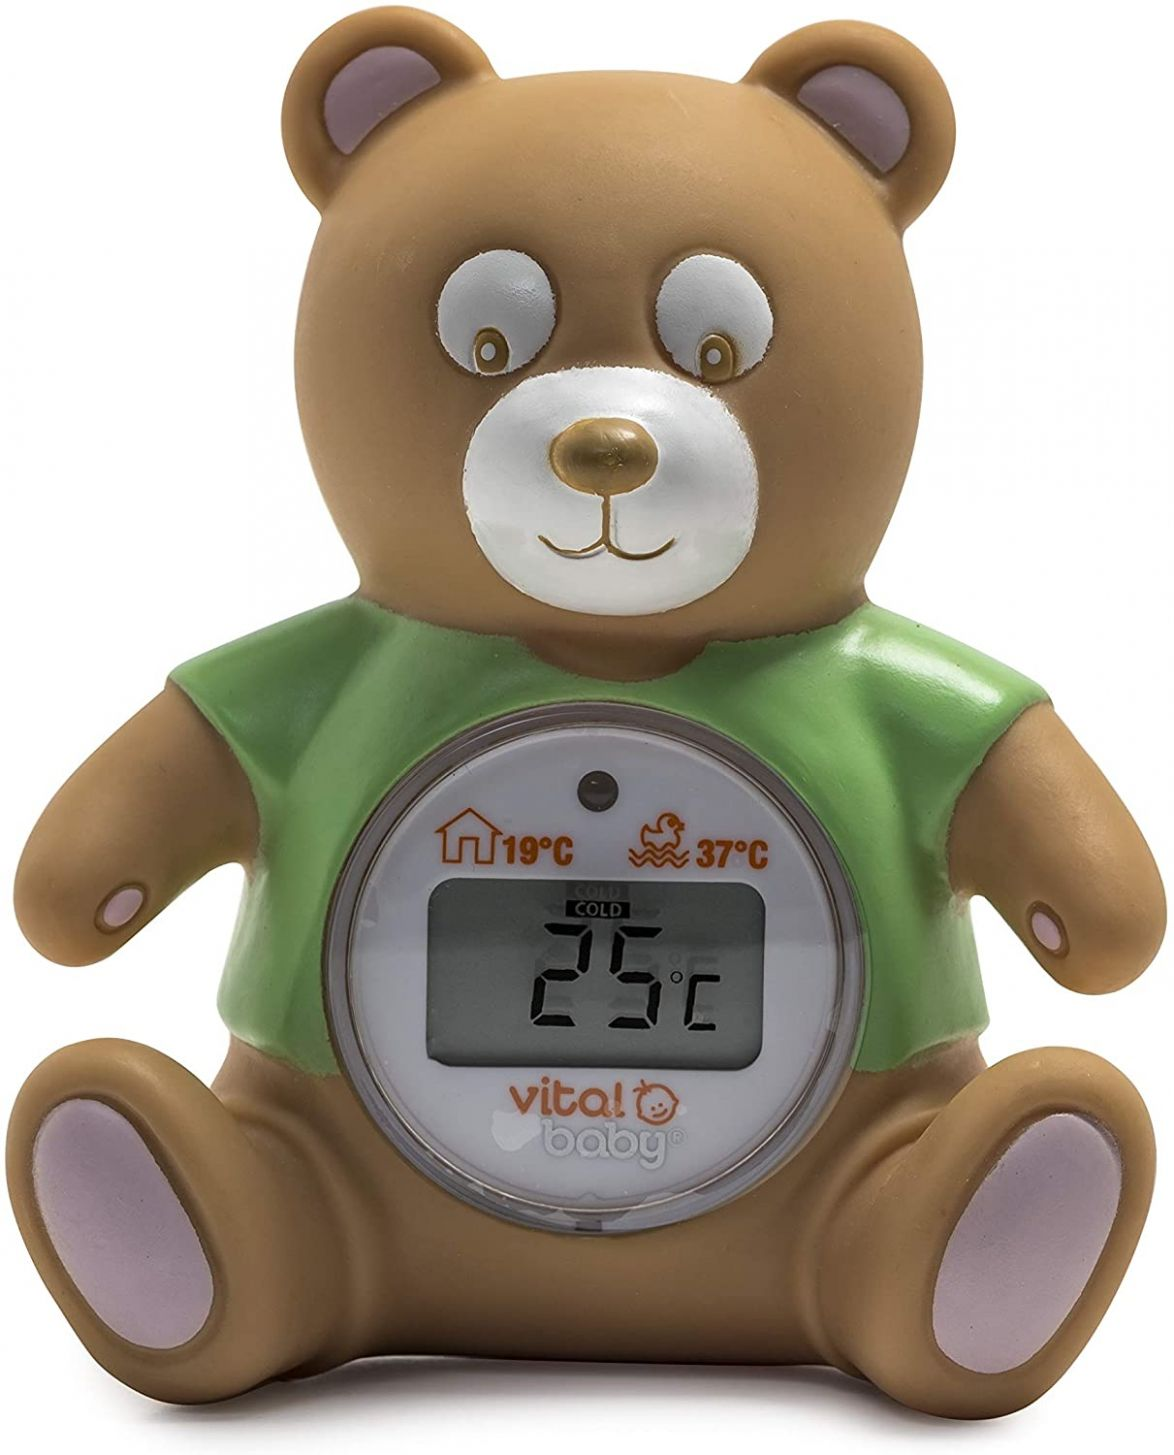 Vital Baby Room and Bath Thermometer